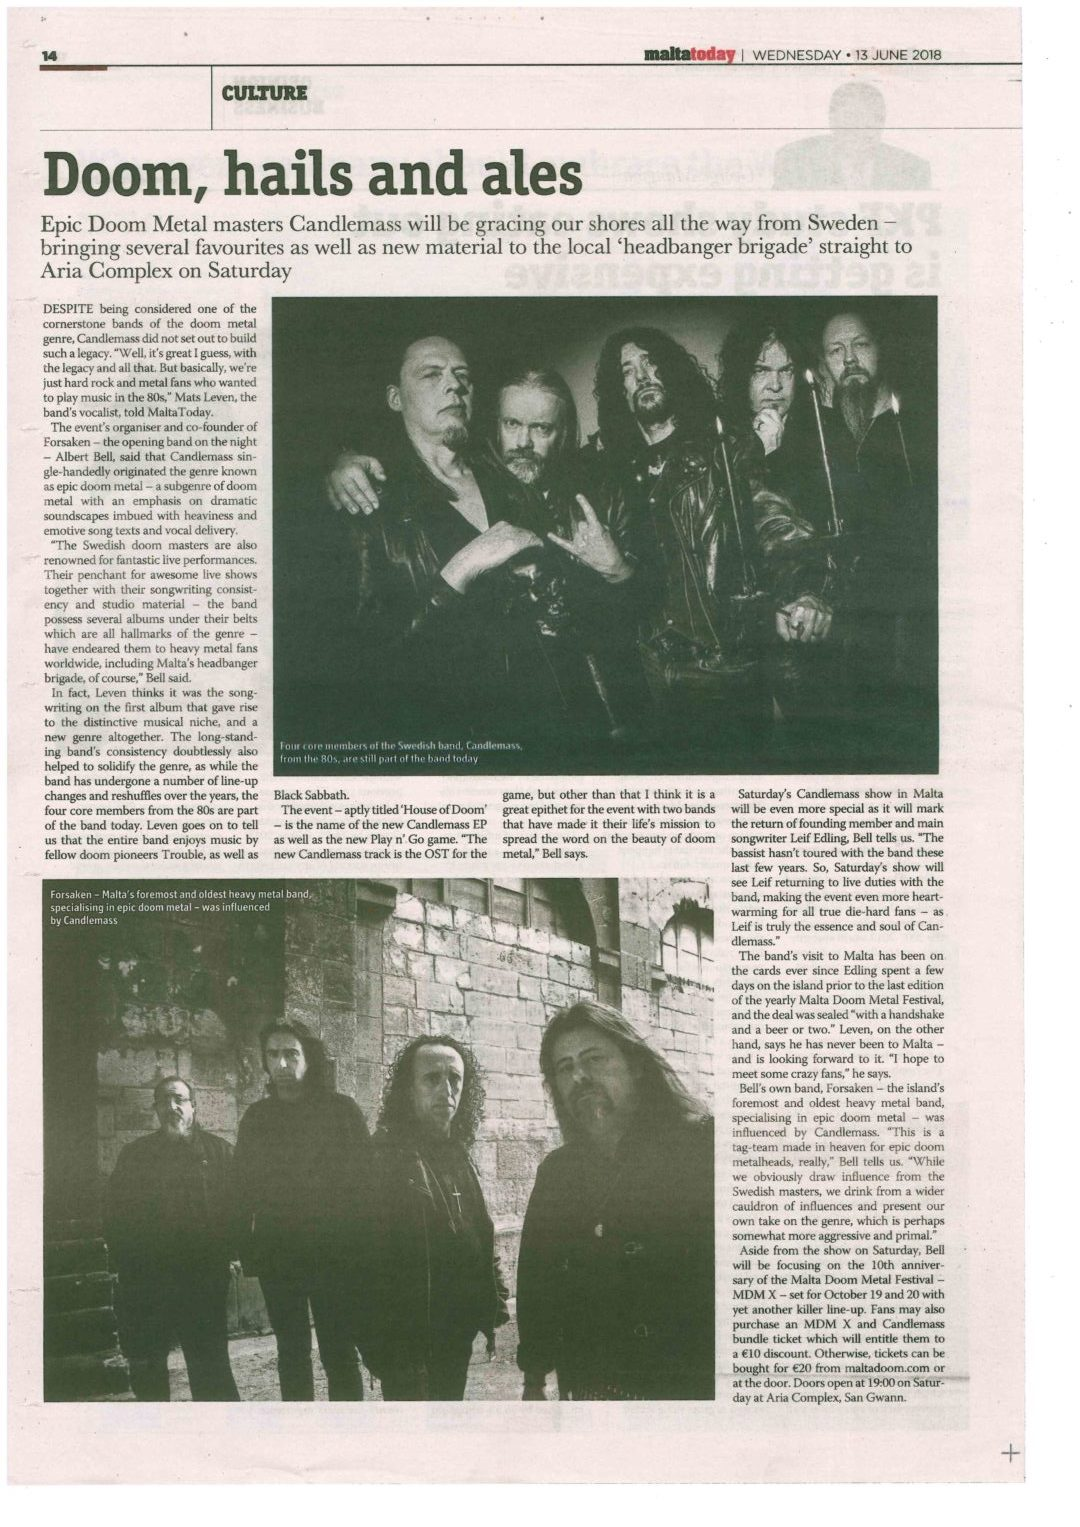 Candlemass concert featured in Maltatoday's local newspaper